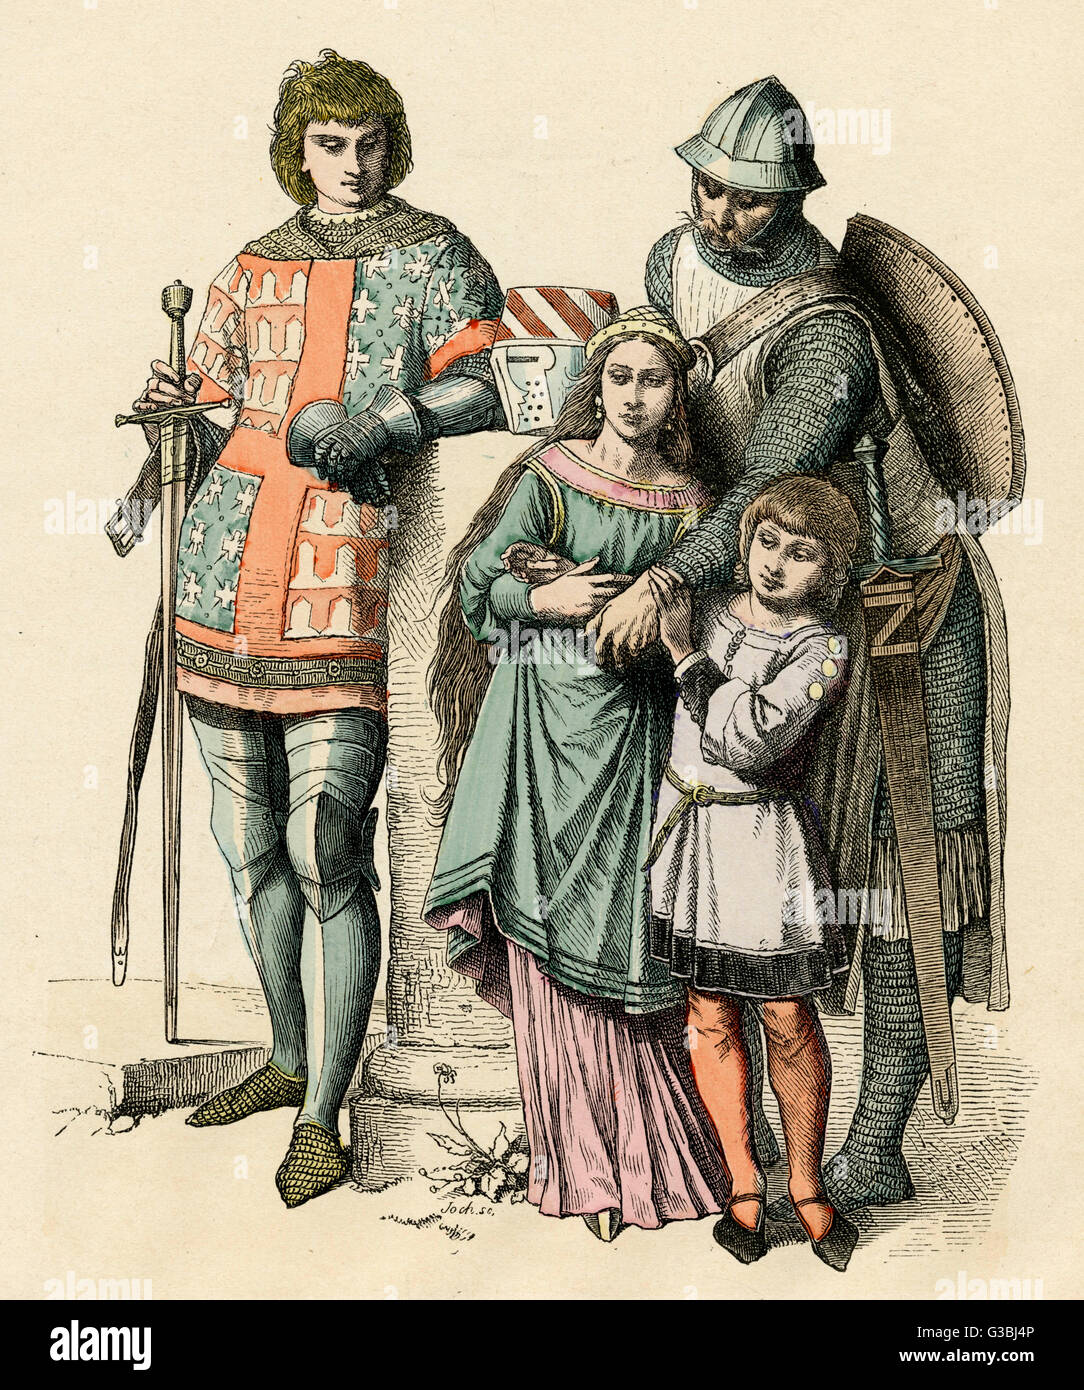 Kirtle Stock Photos & Kirtle Stock Images - Alamy